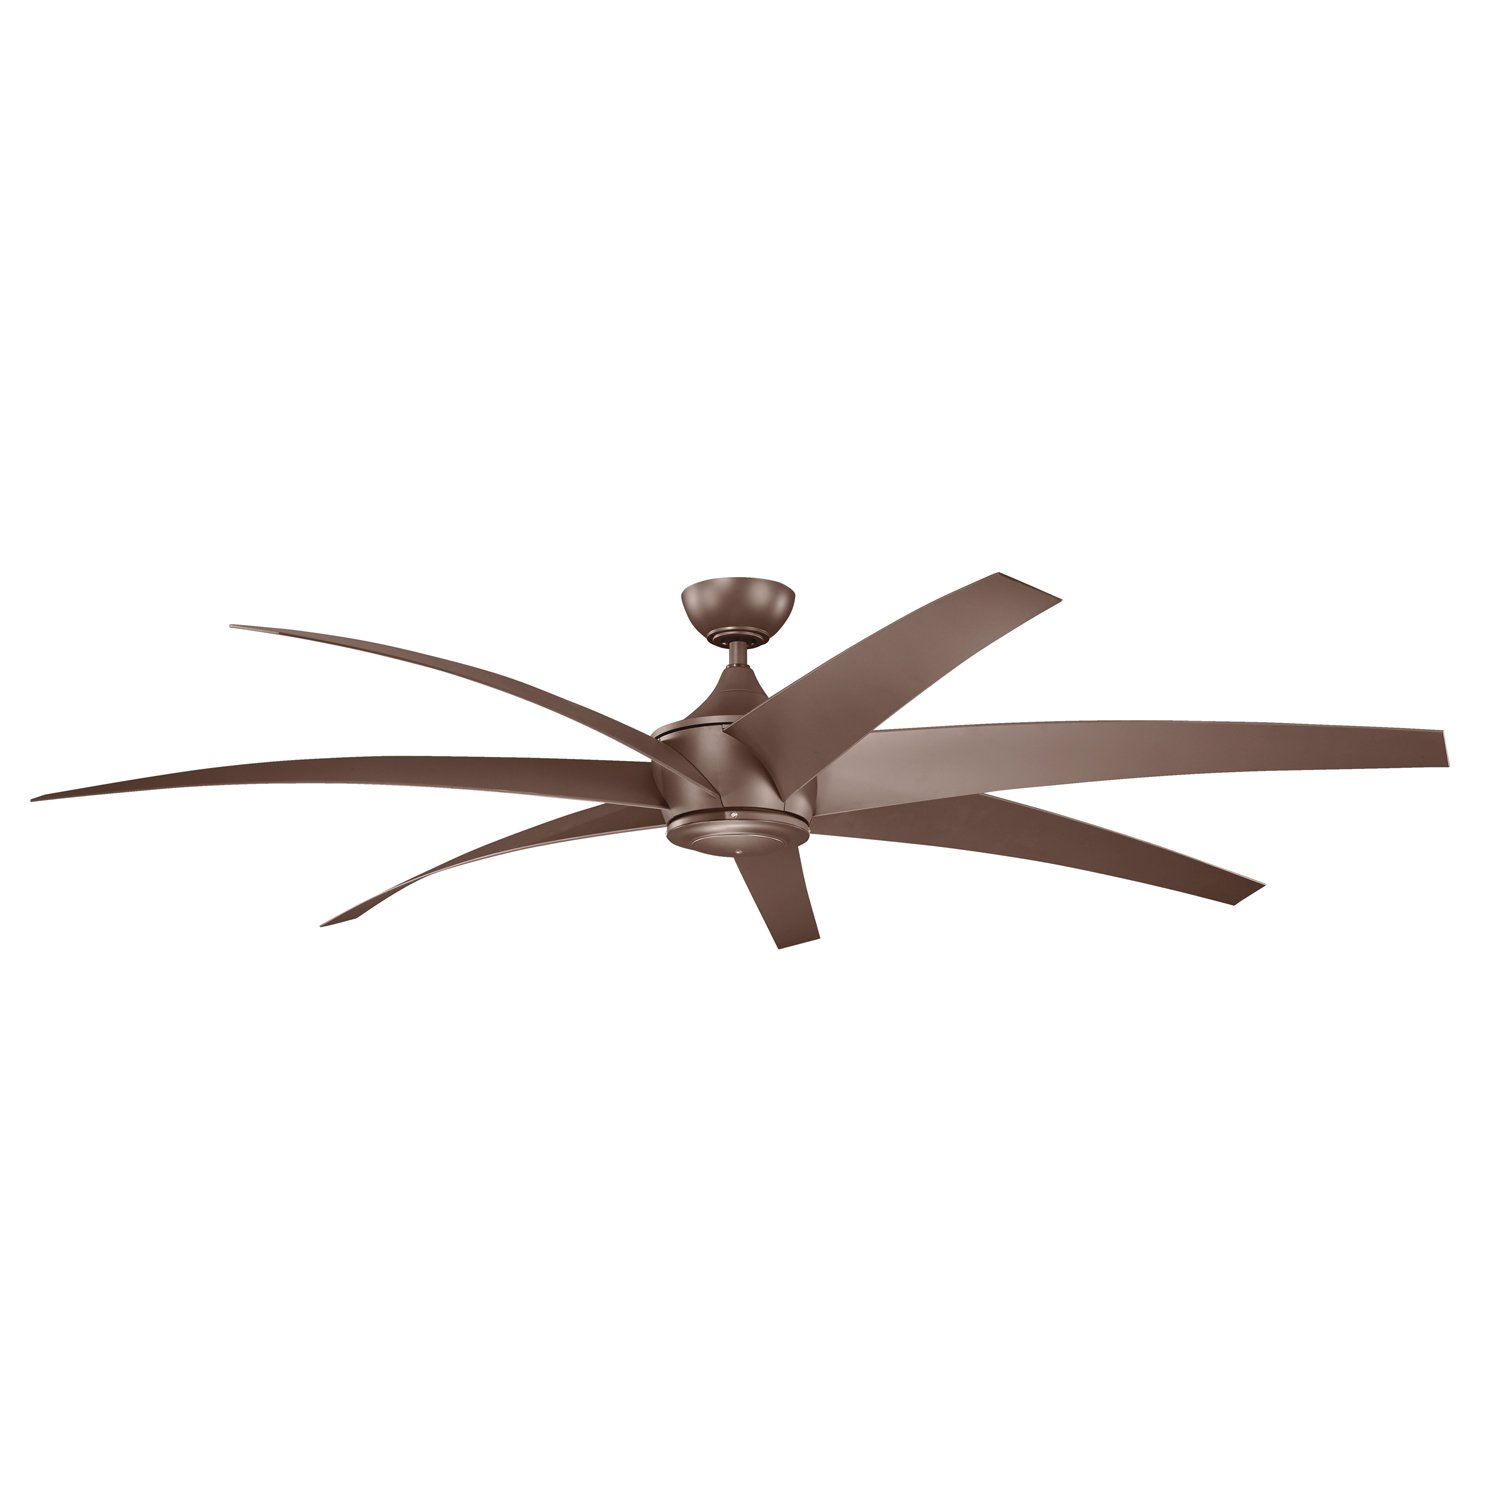 kichler lighting dbk lehr climates inch wet location dc  - kichler lighting dbk lehr climates inch wet location dc ceiling fandistressed black finish with distressed black abs blades   amazoncom